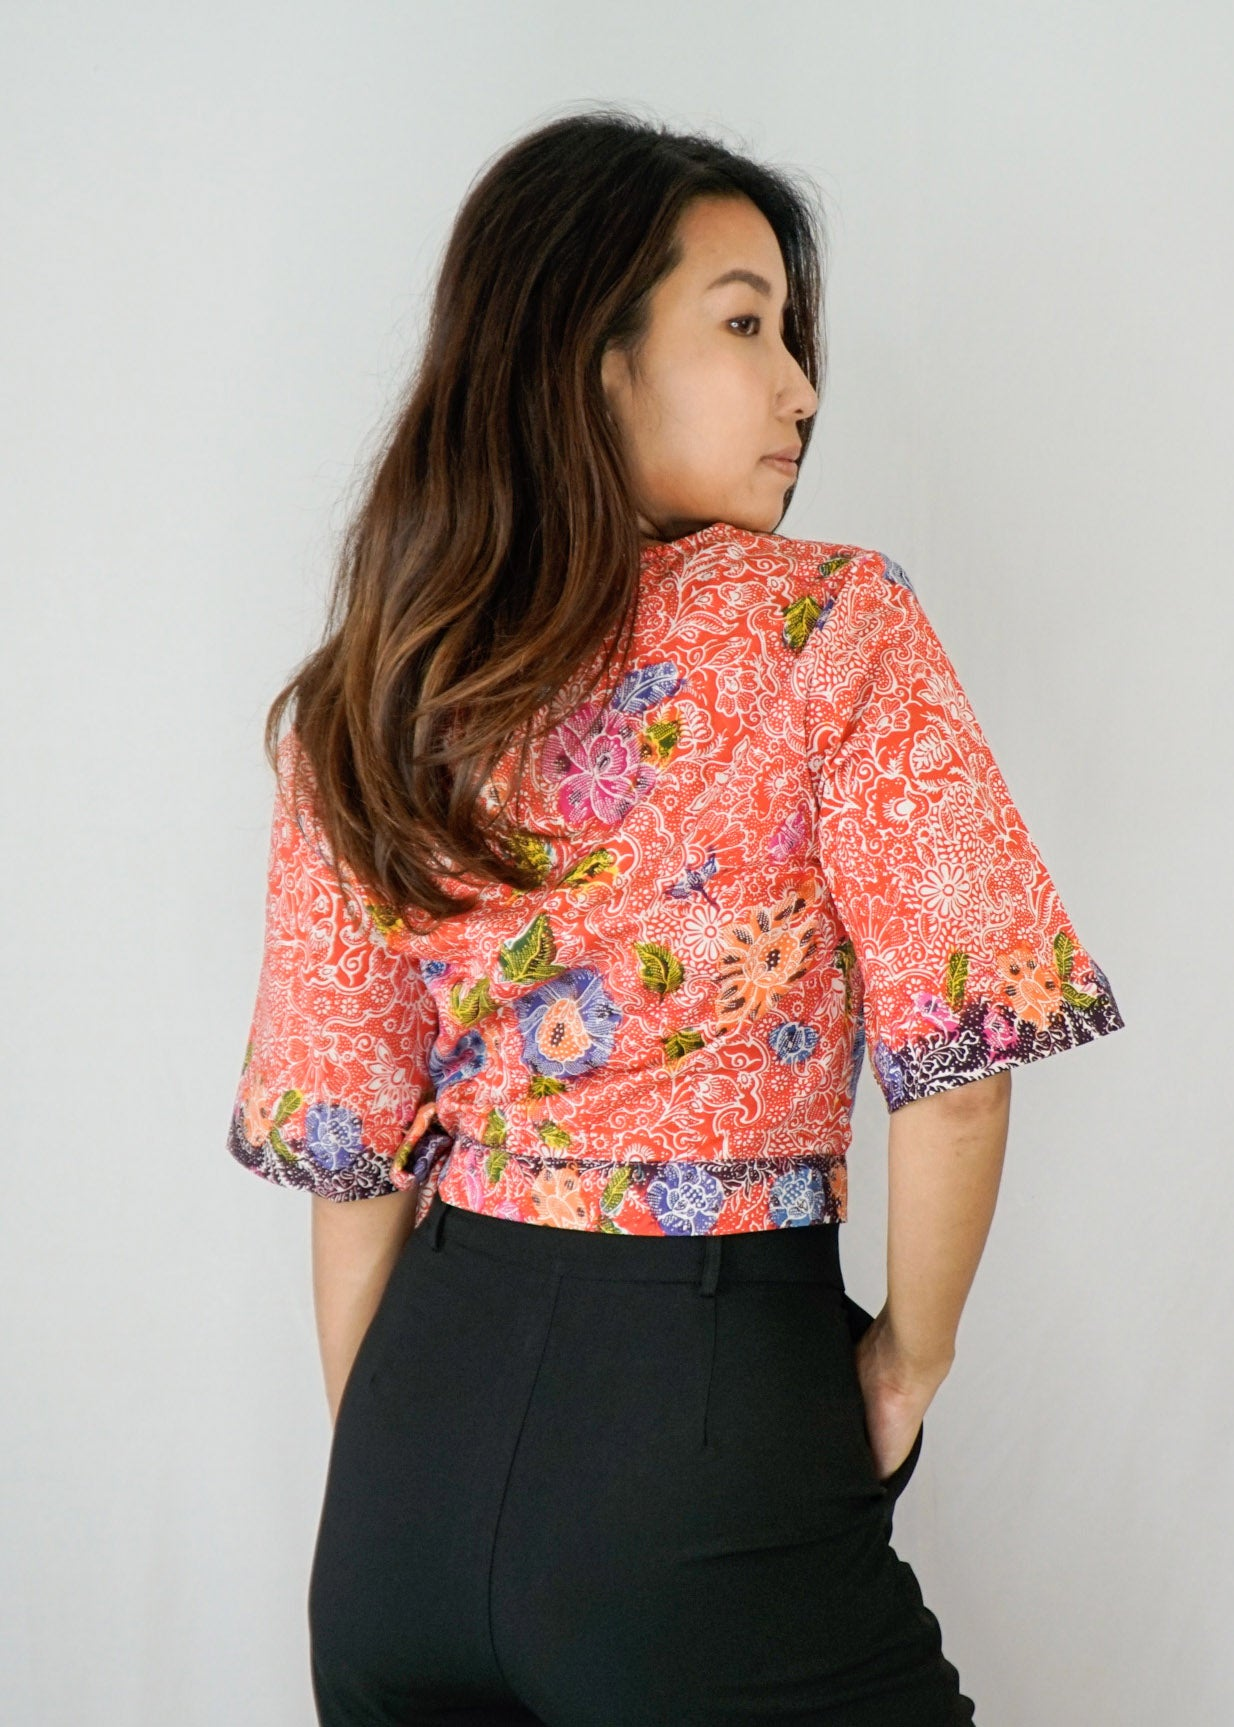 Tracy Flare Sleeves Top in Hand Drawn Blumen